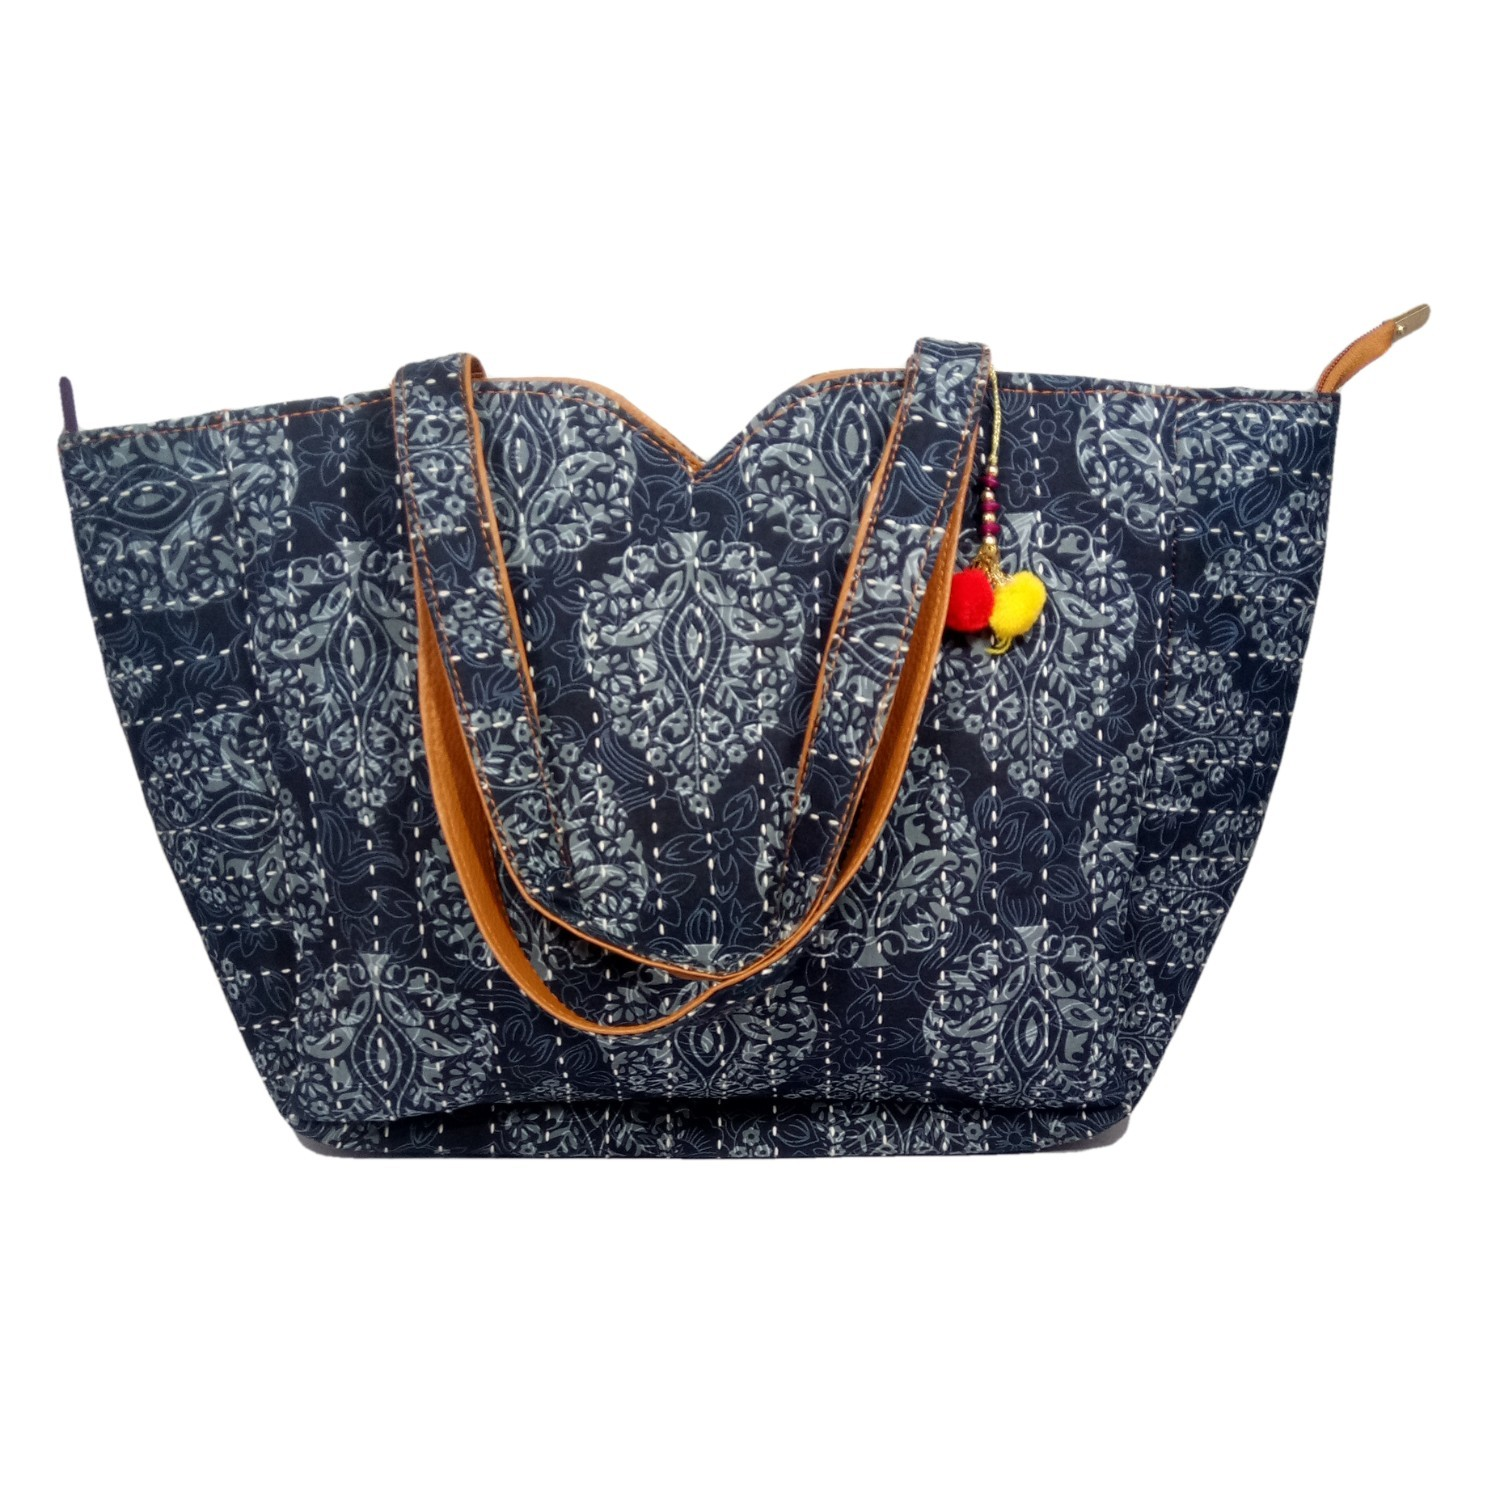 Handmade Excellent Blue Genuine Shoulder Bag by Women Self Help Groups of Rajasthan